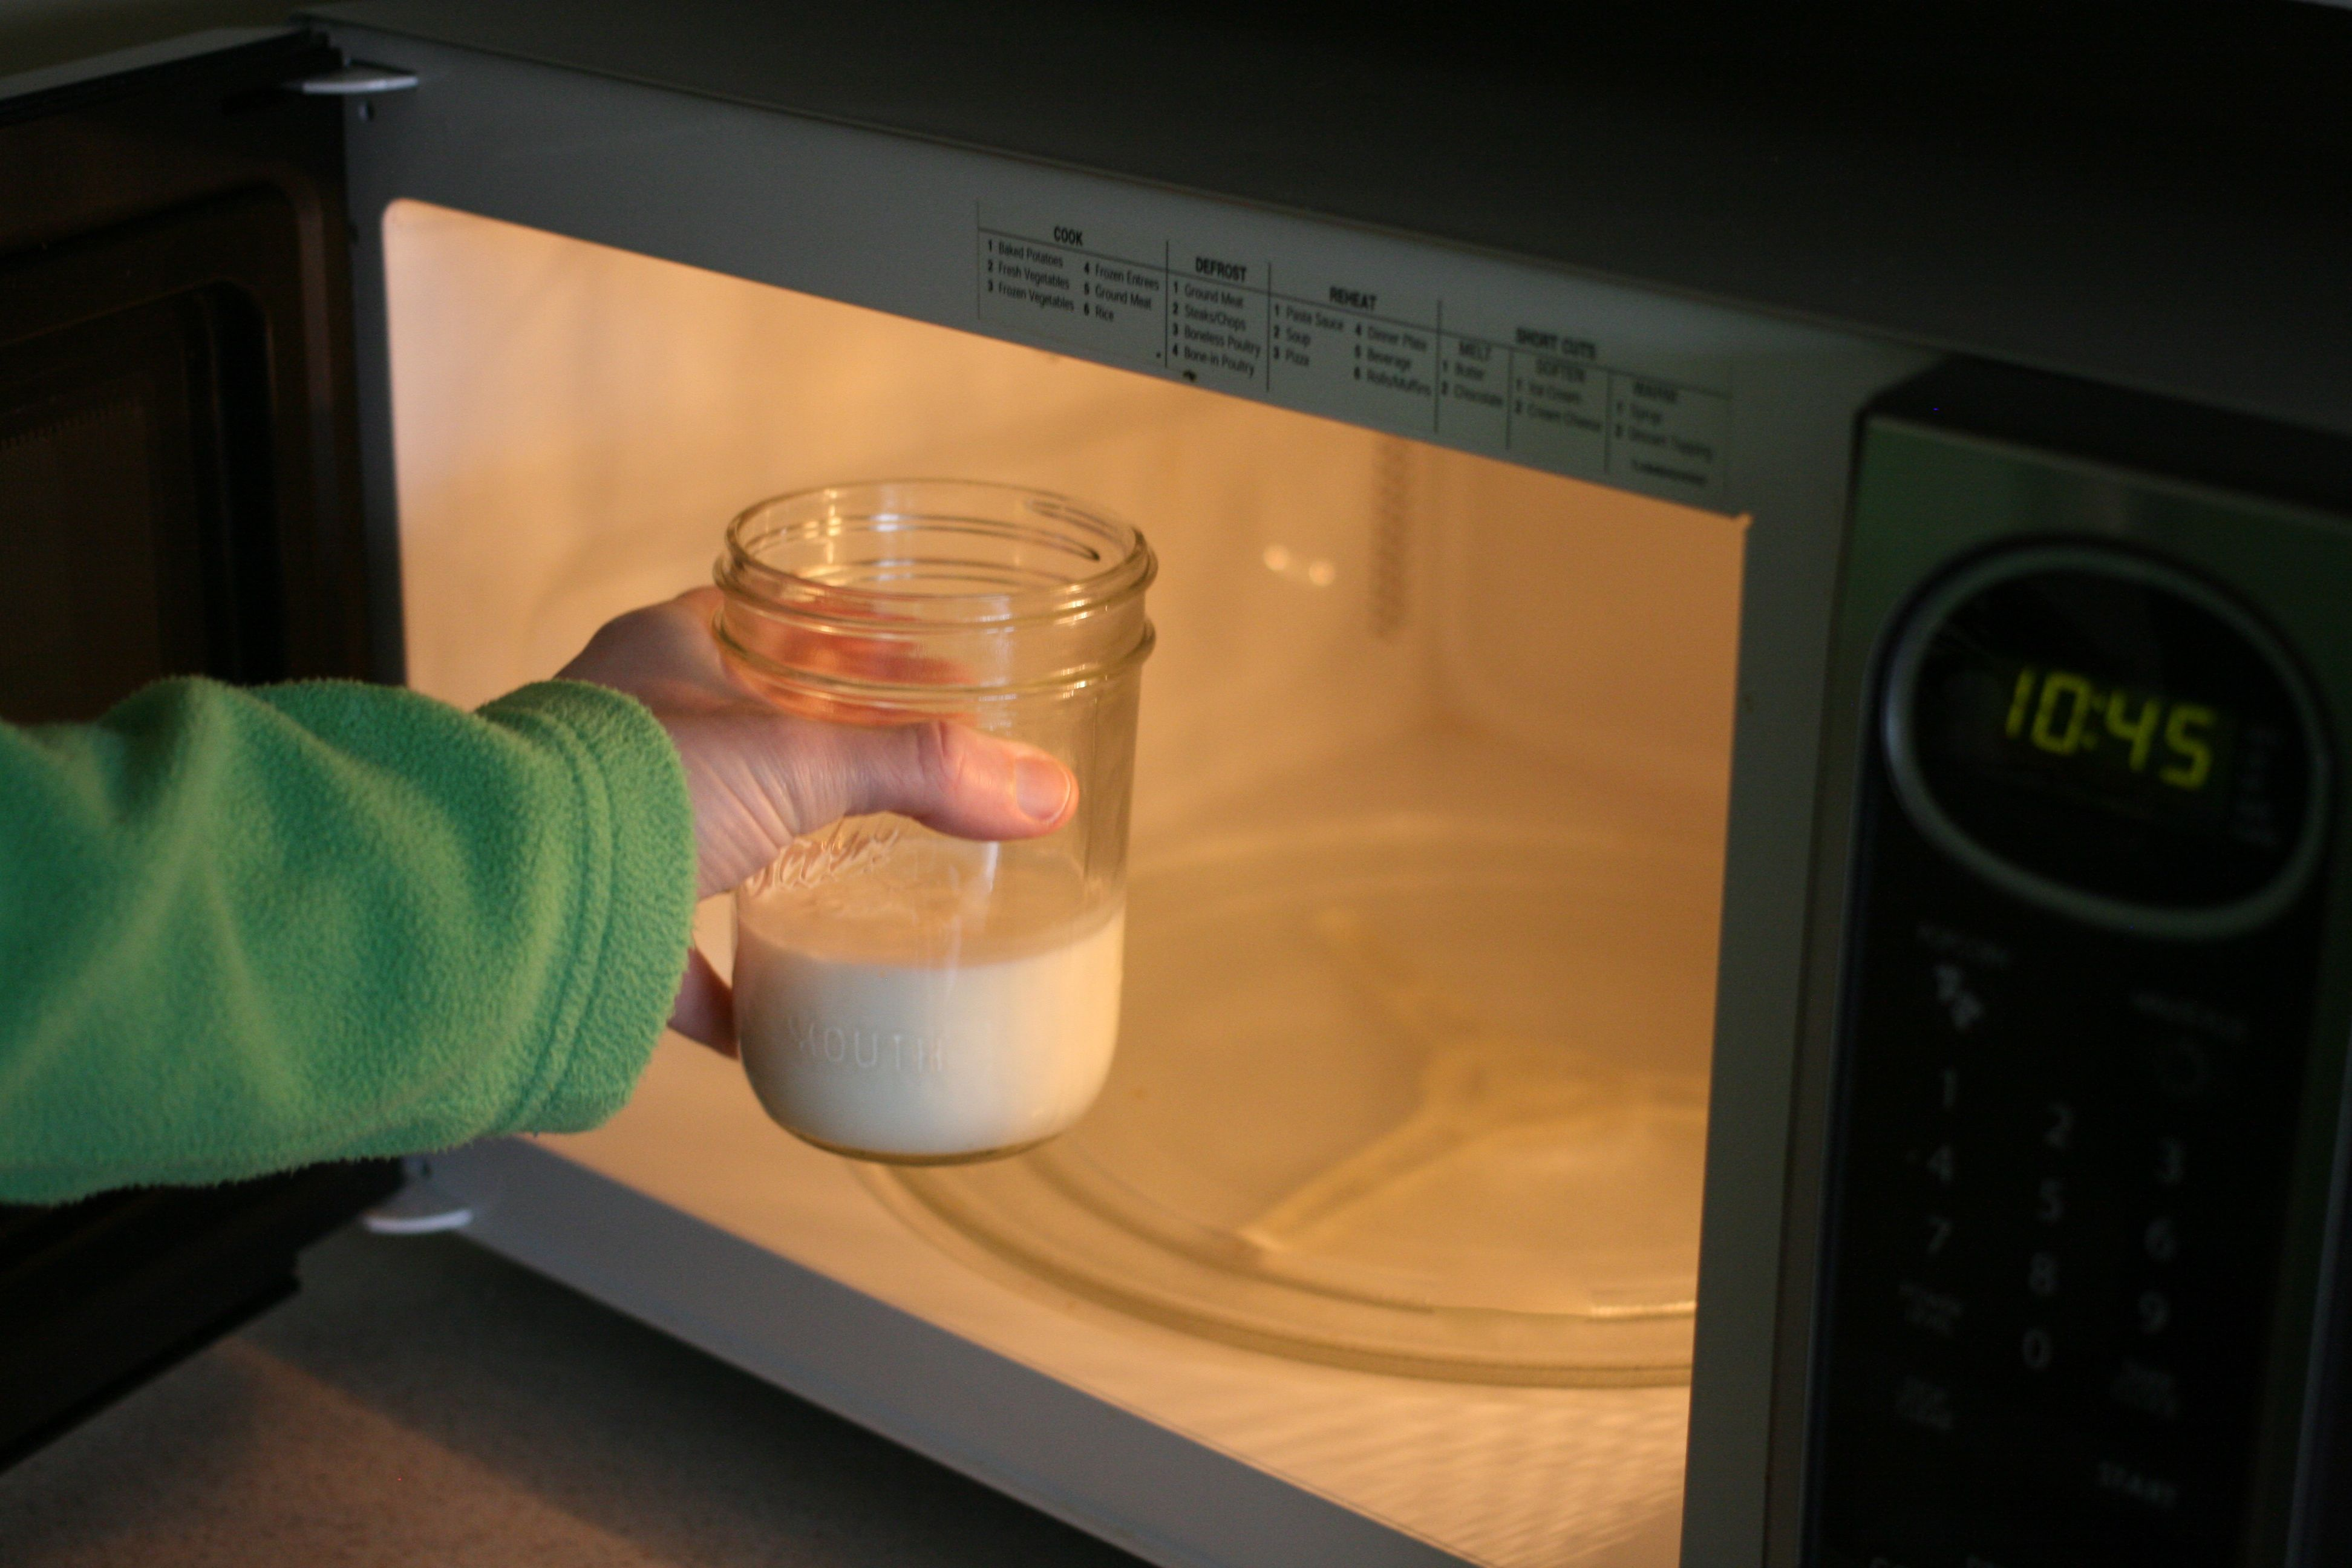 How to Heat Milk in The Microwave